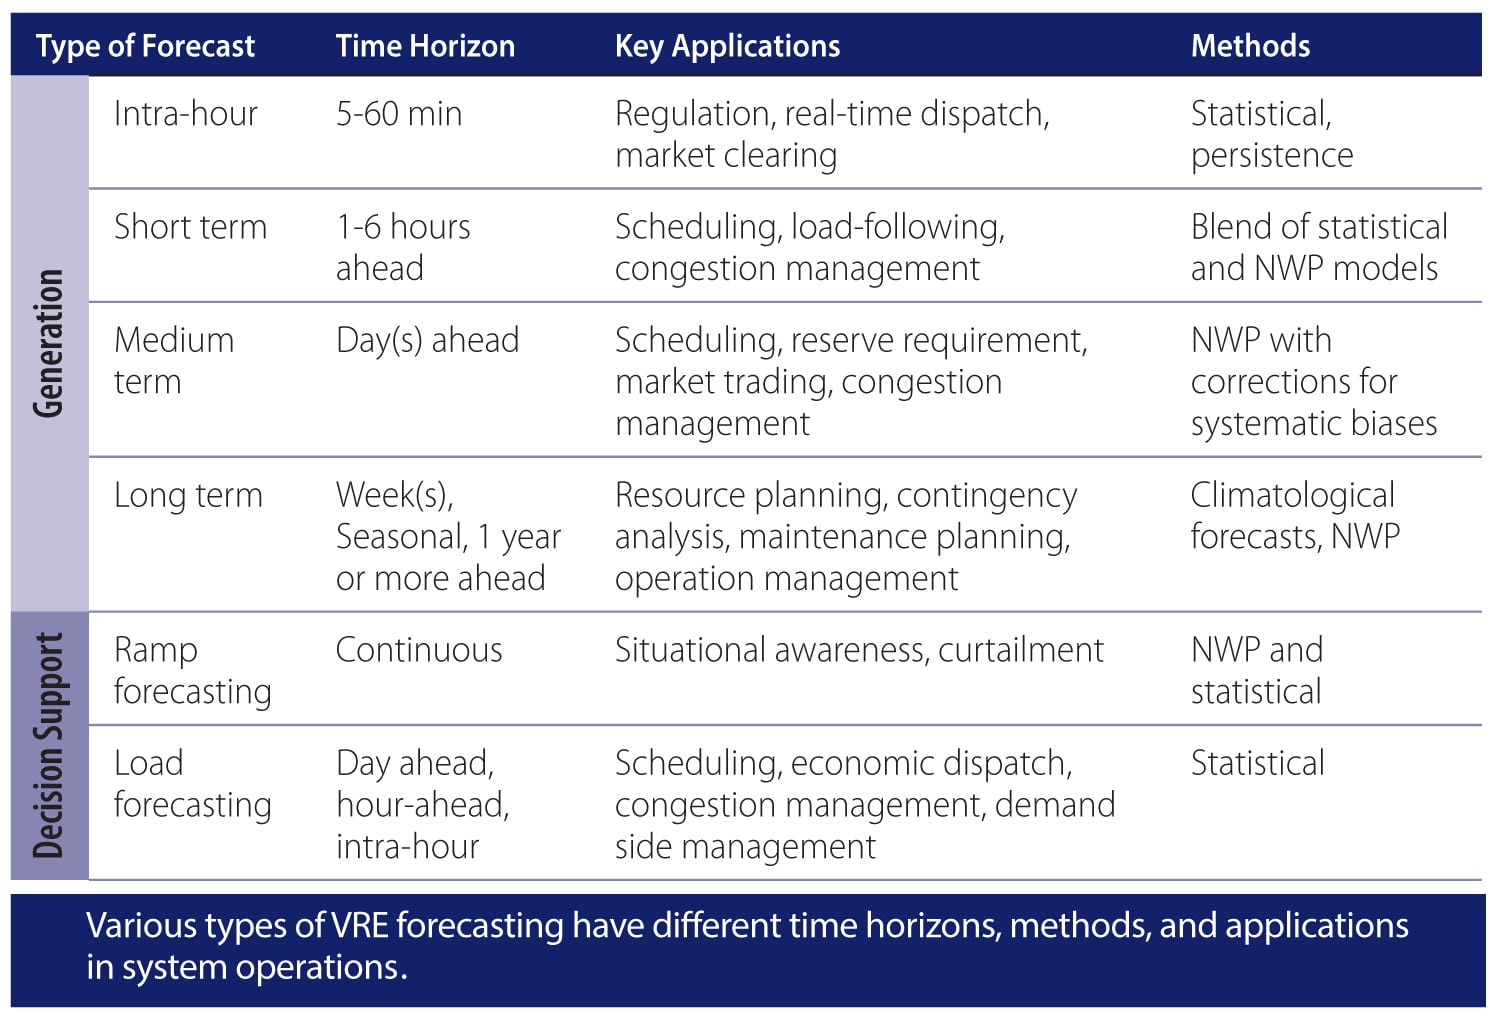 Pic. 2. Typical terms and used methods of prognostication for VRE generation.